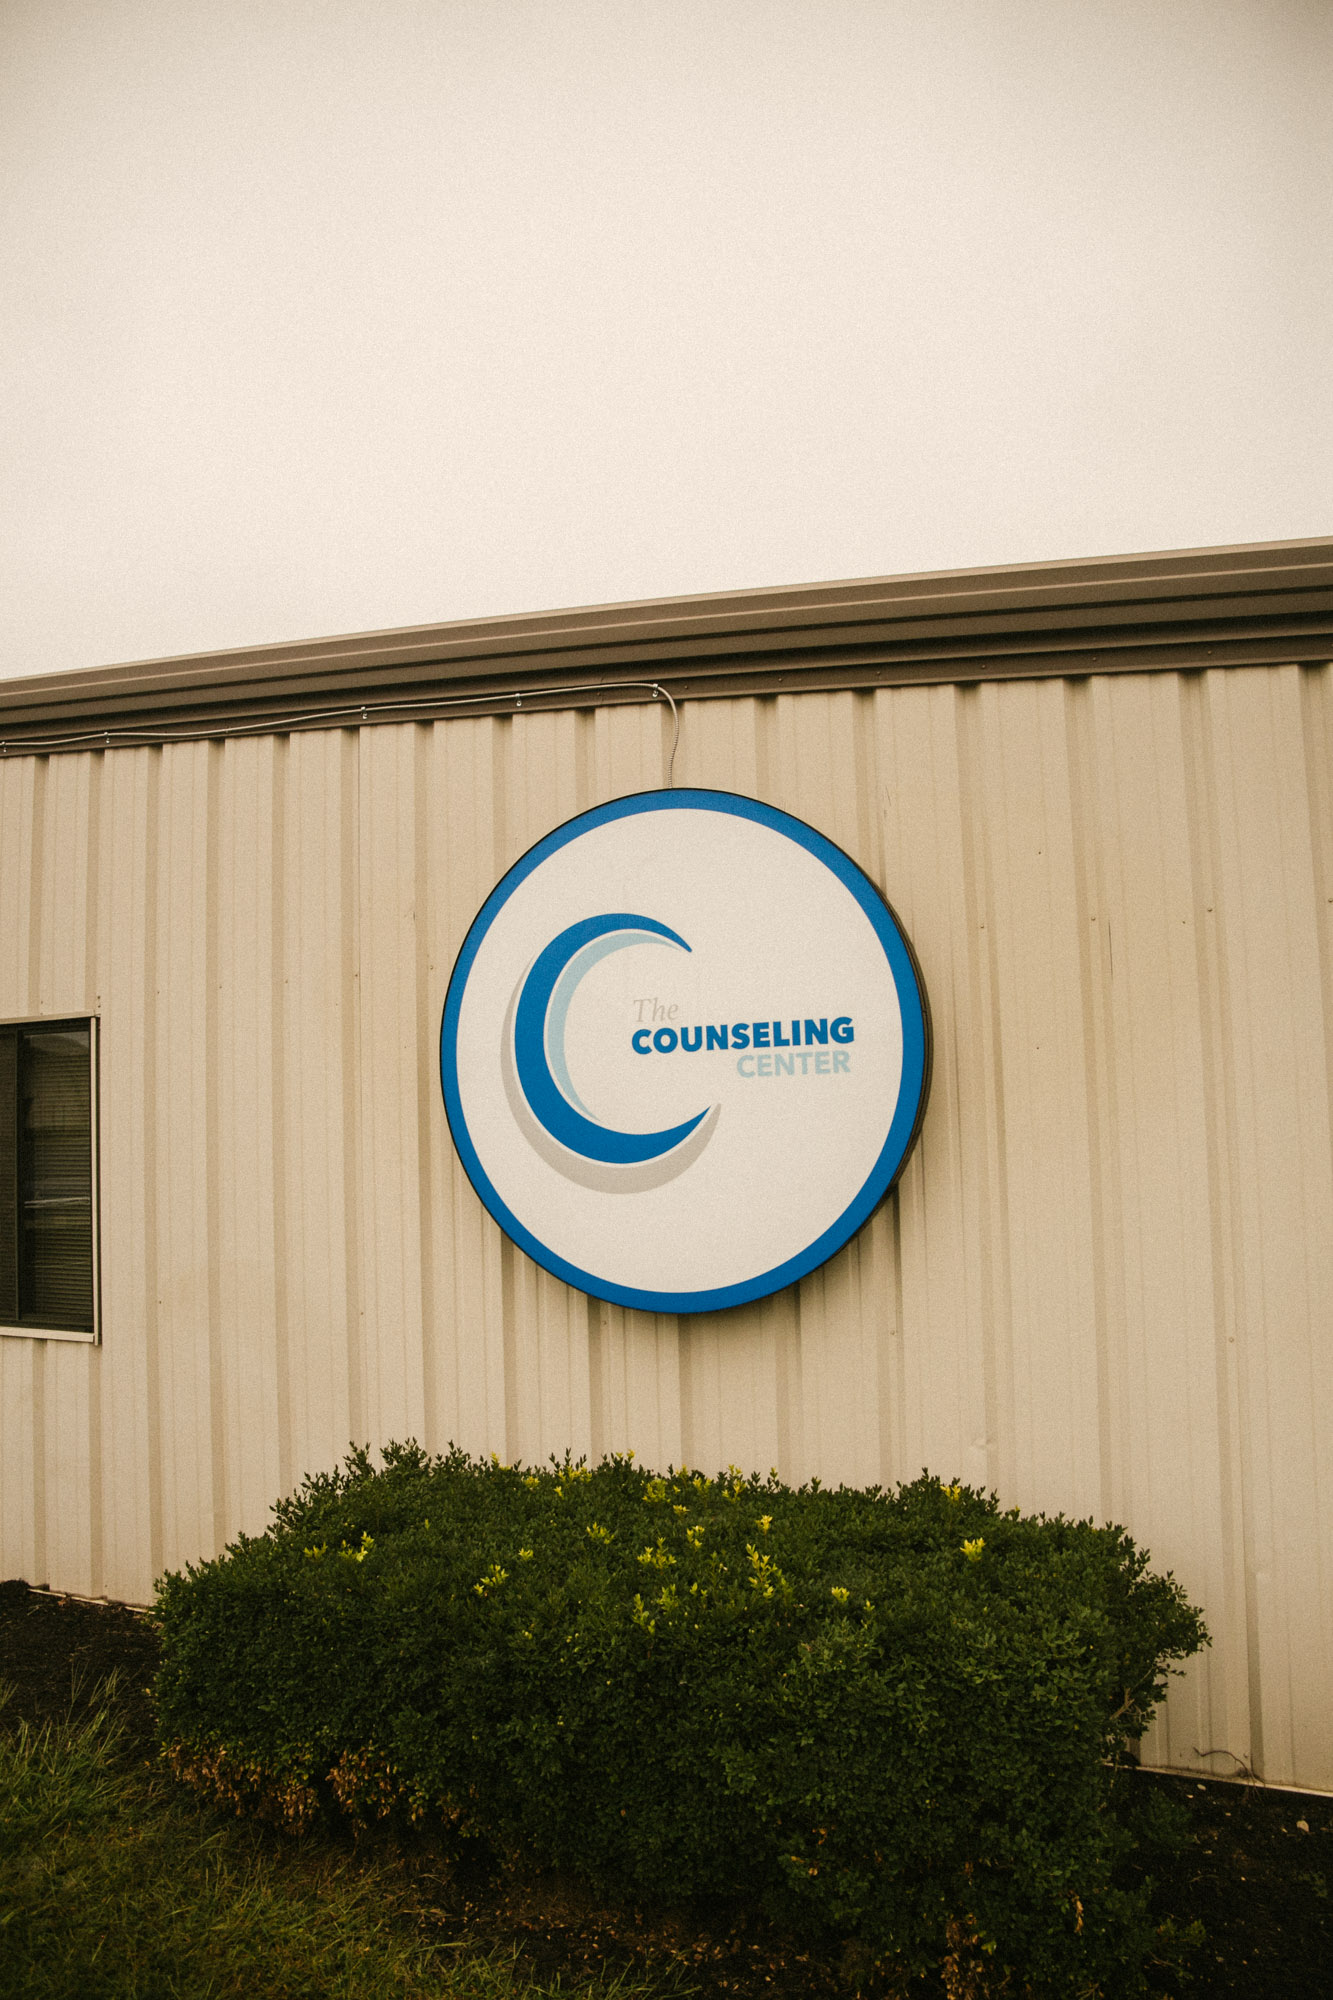 The exterior sign of The Union Chapel Counseling Center